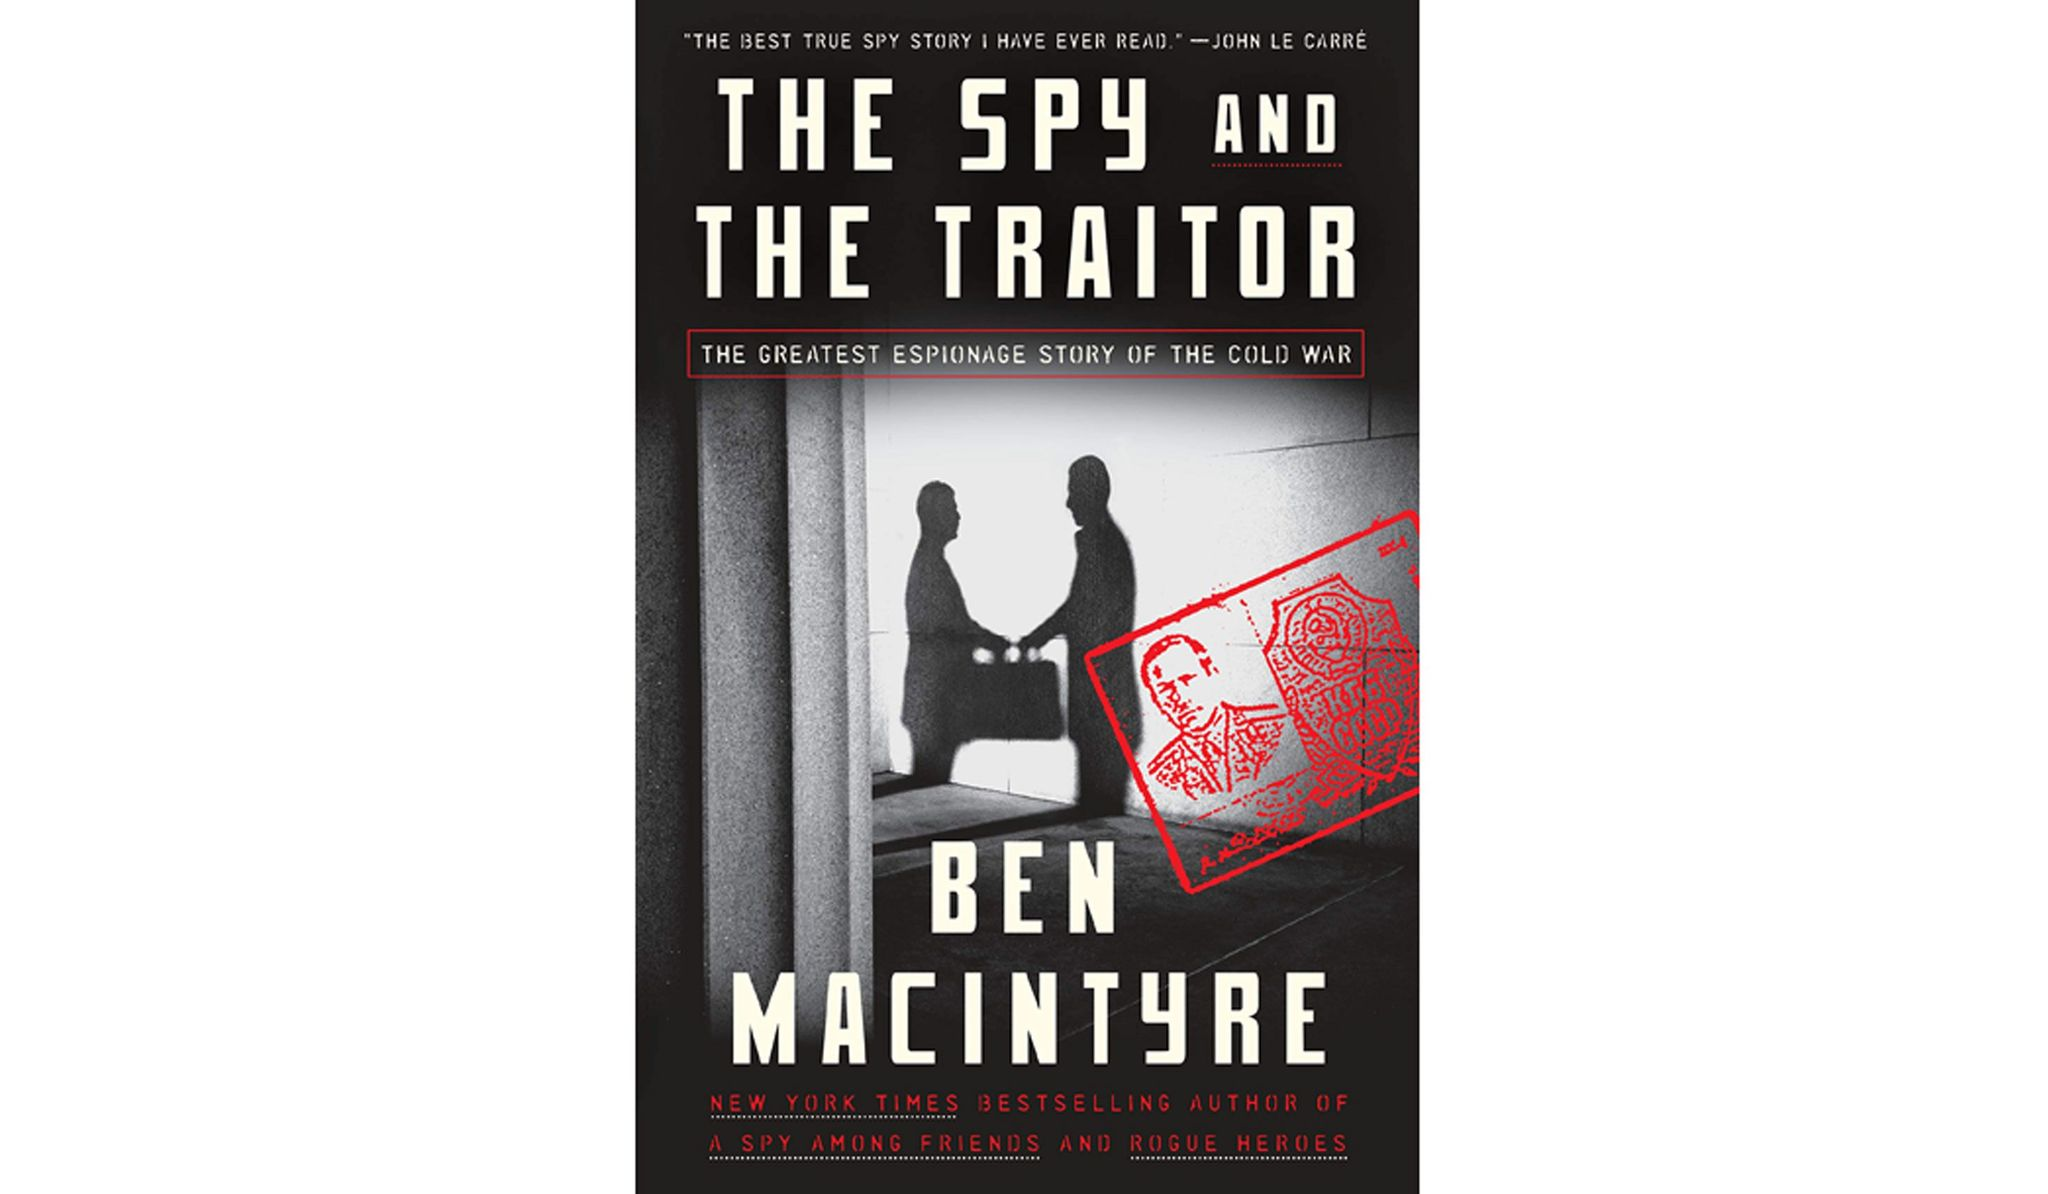 The most important spy of the Cold War era